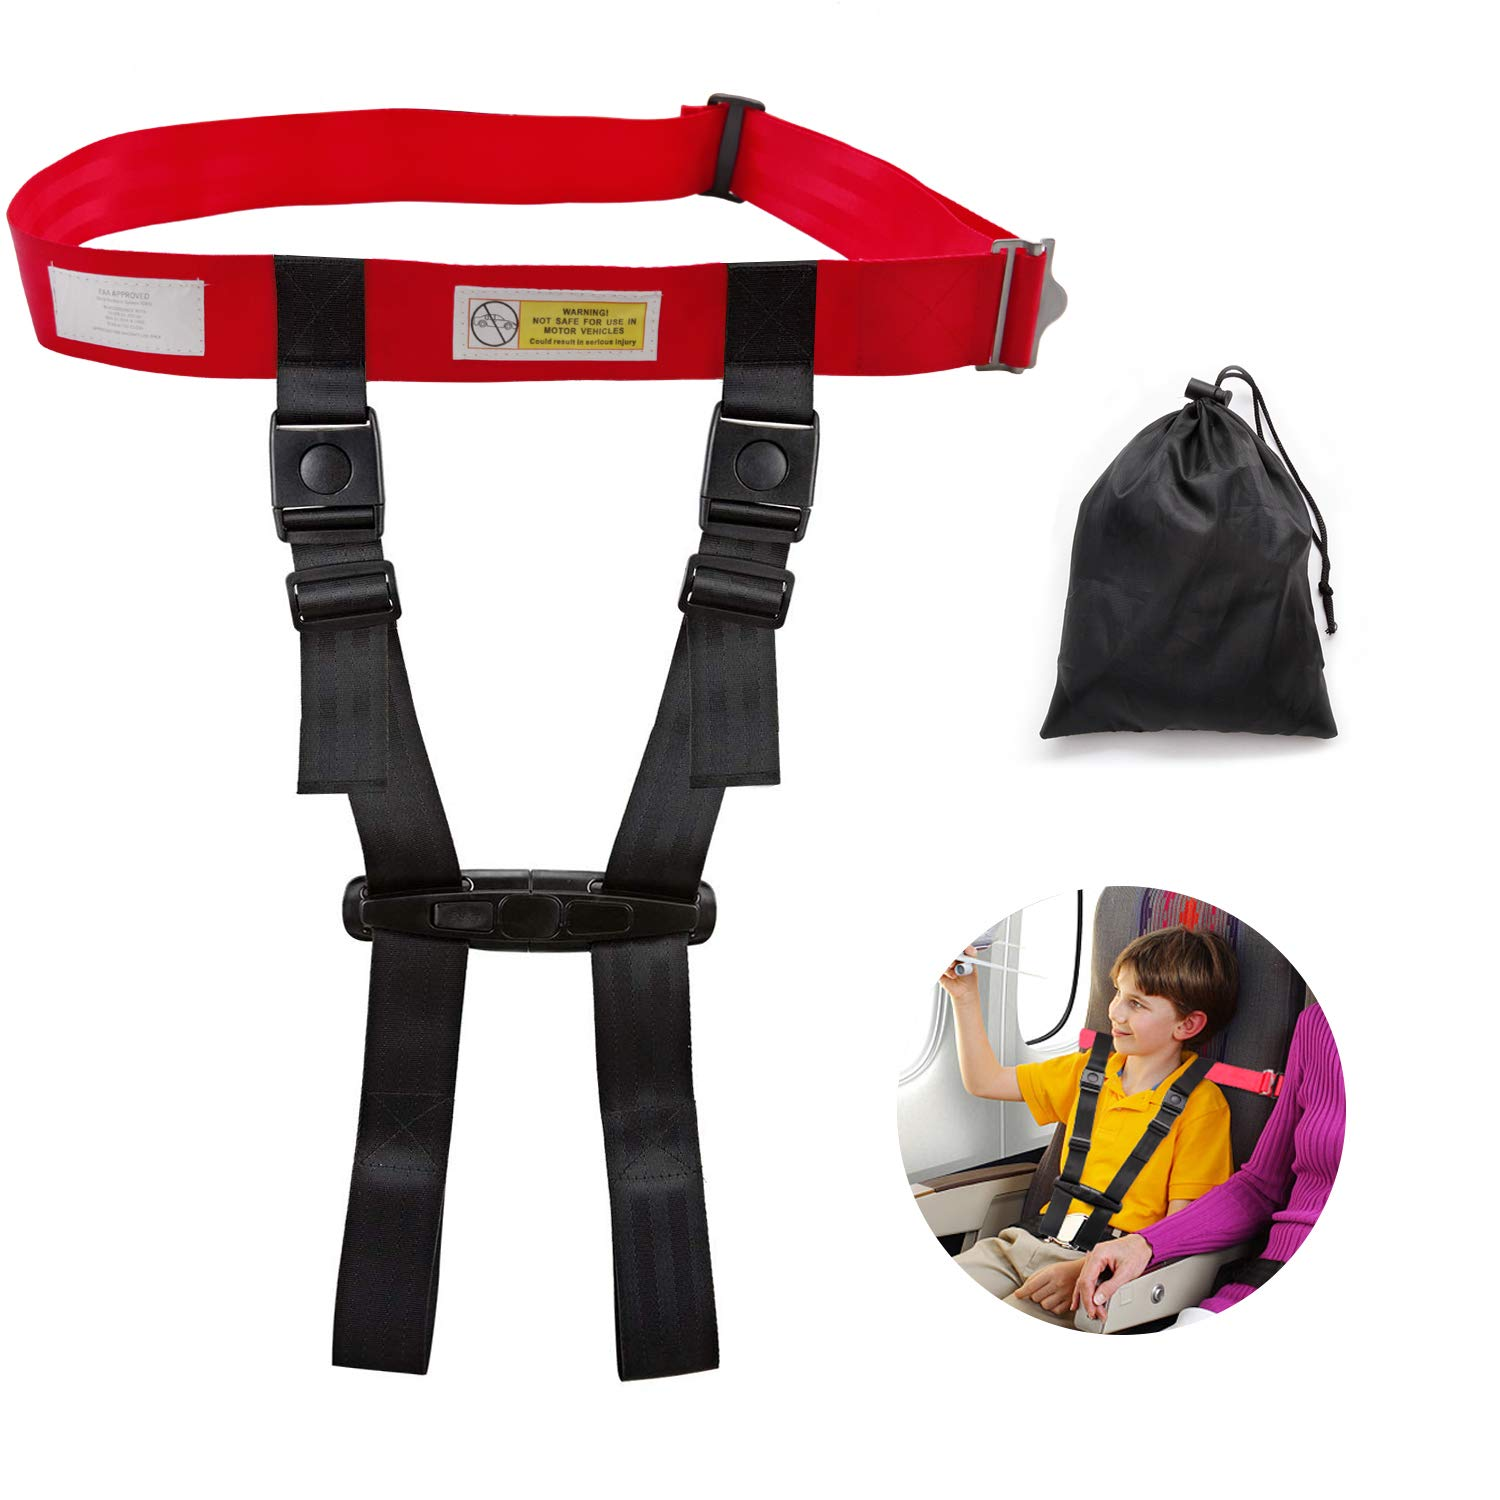 Child Airplane Safety Travel Harness, FAA Approved Clip Strap Safety Airplane Child Restraint System for Baby,Toddlers & Kids - Airplane Travel Accessories for Aviation Travel Use